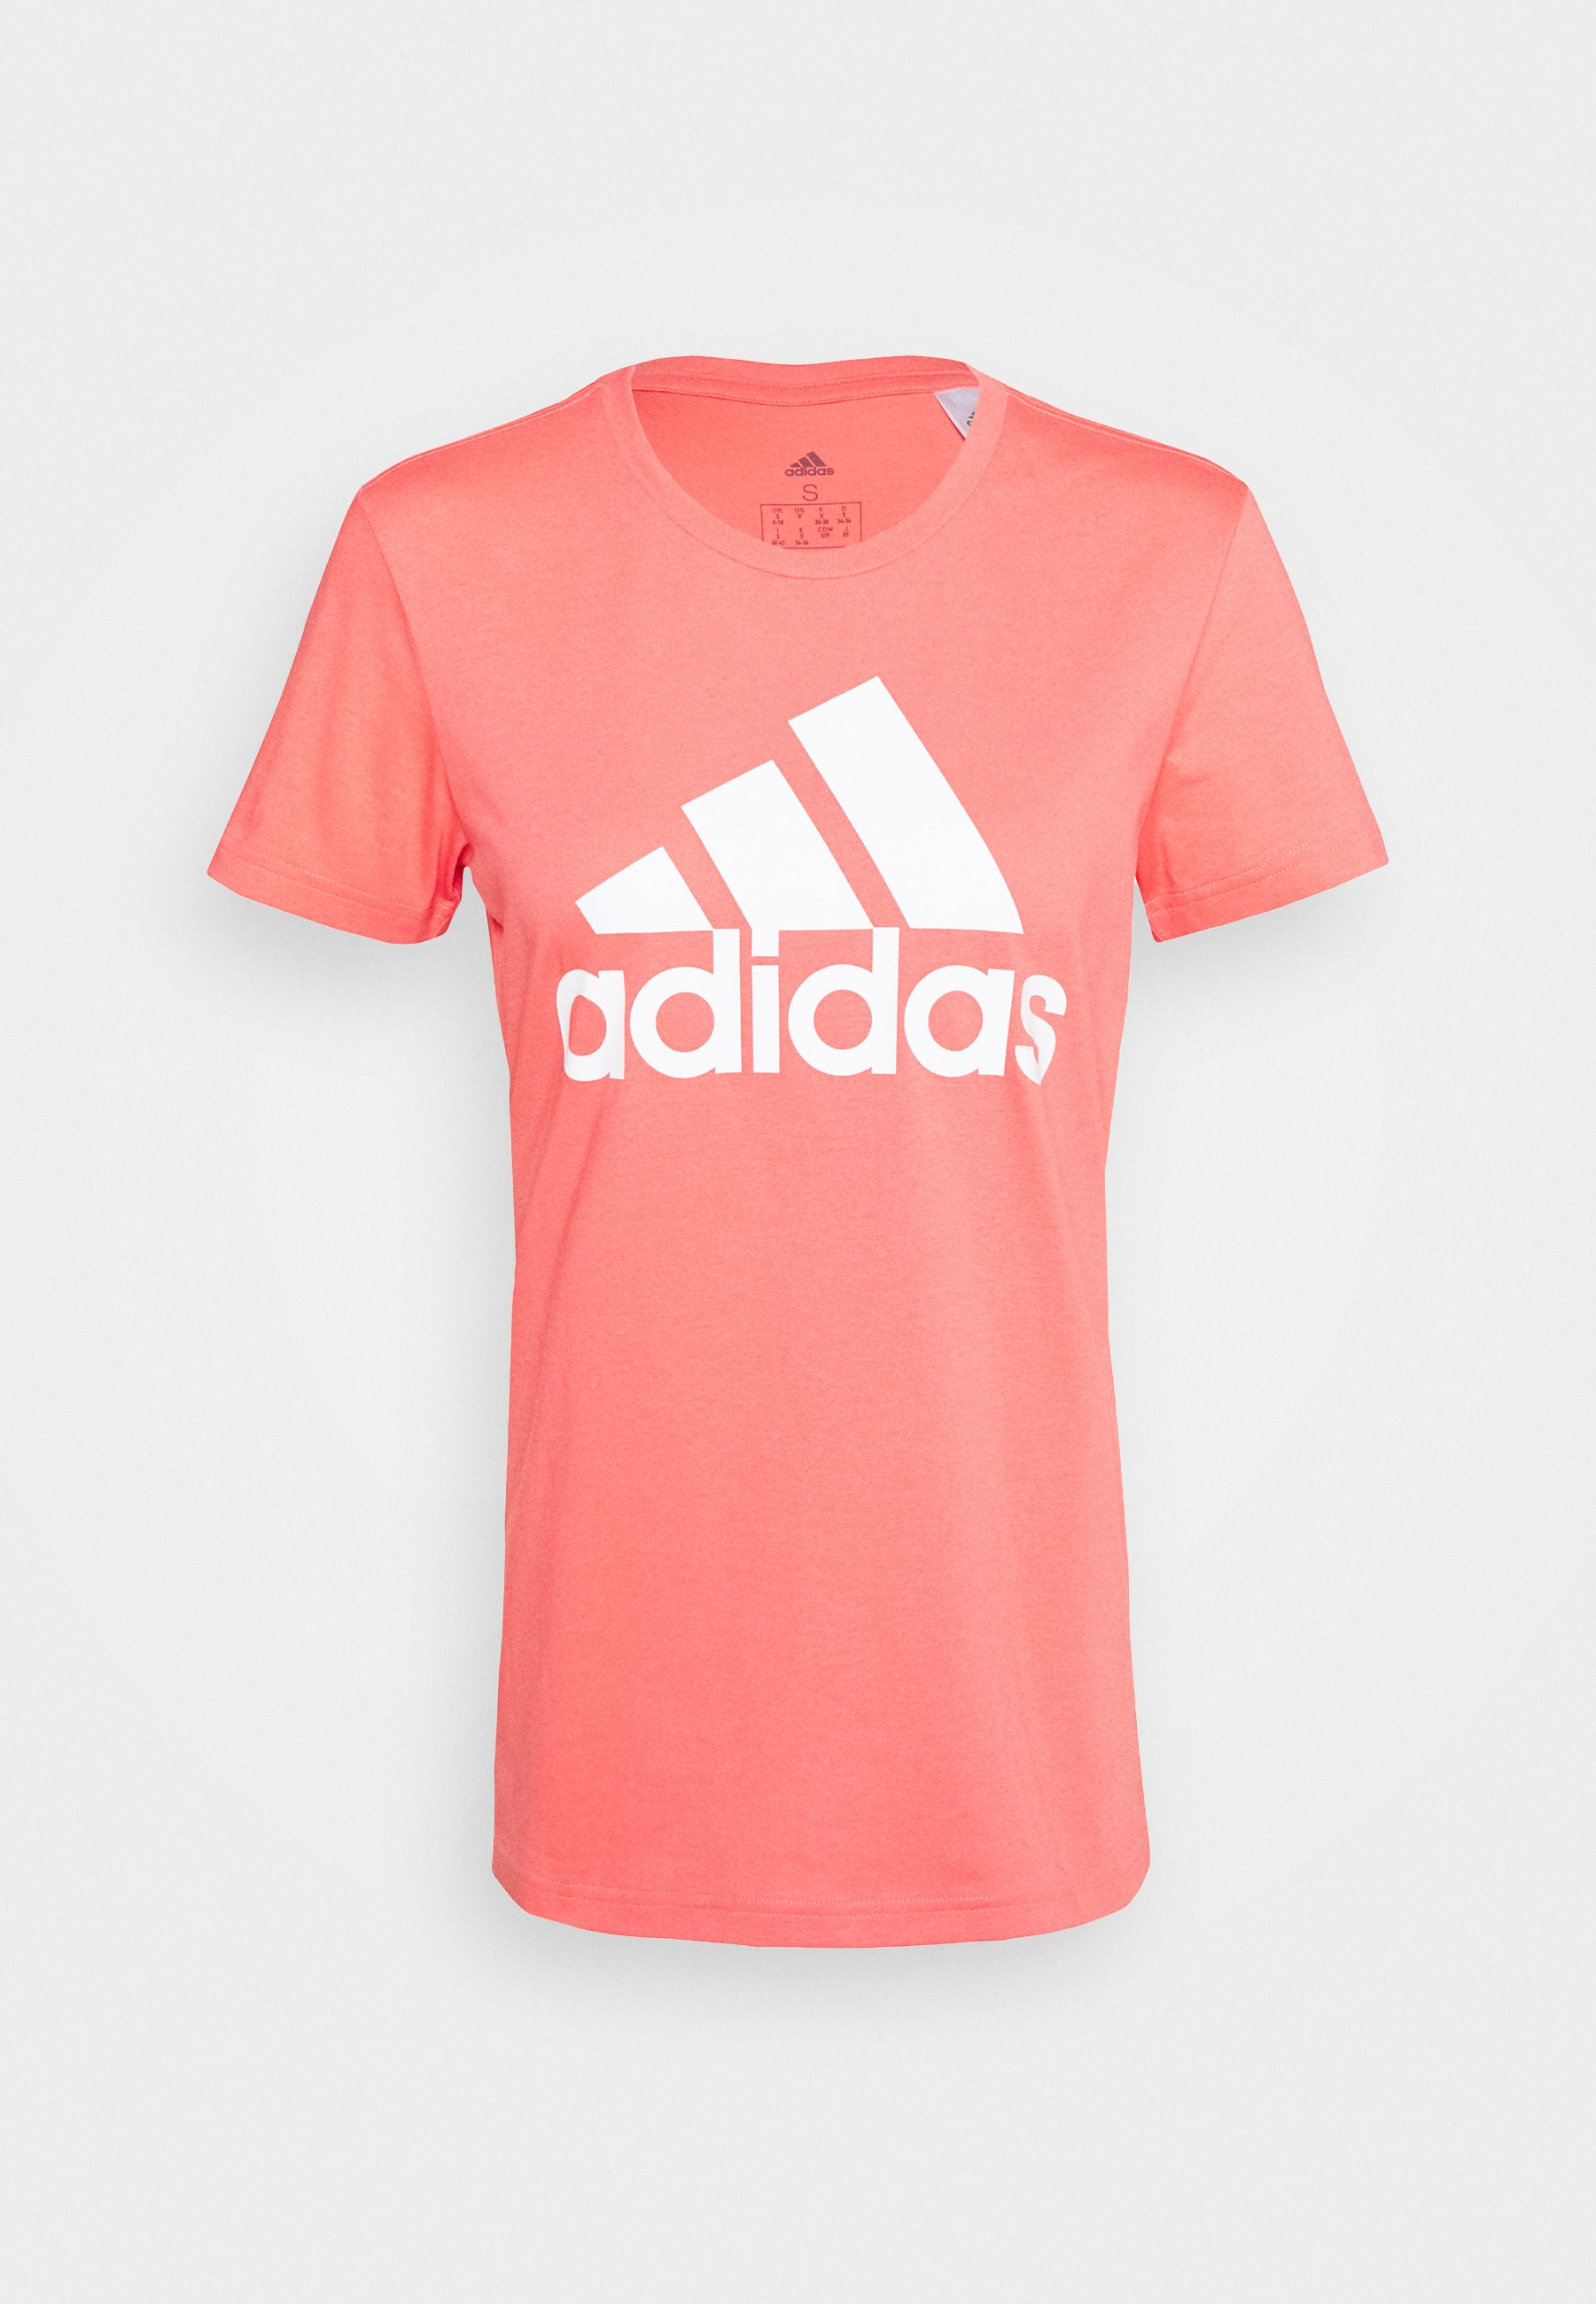 Adidas ESSENTIAL LIN T Shirt Herren medium grey heather im